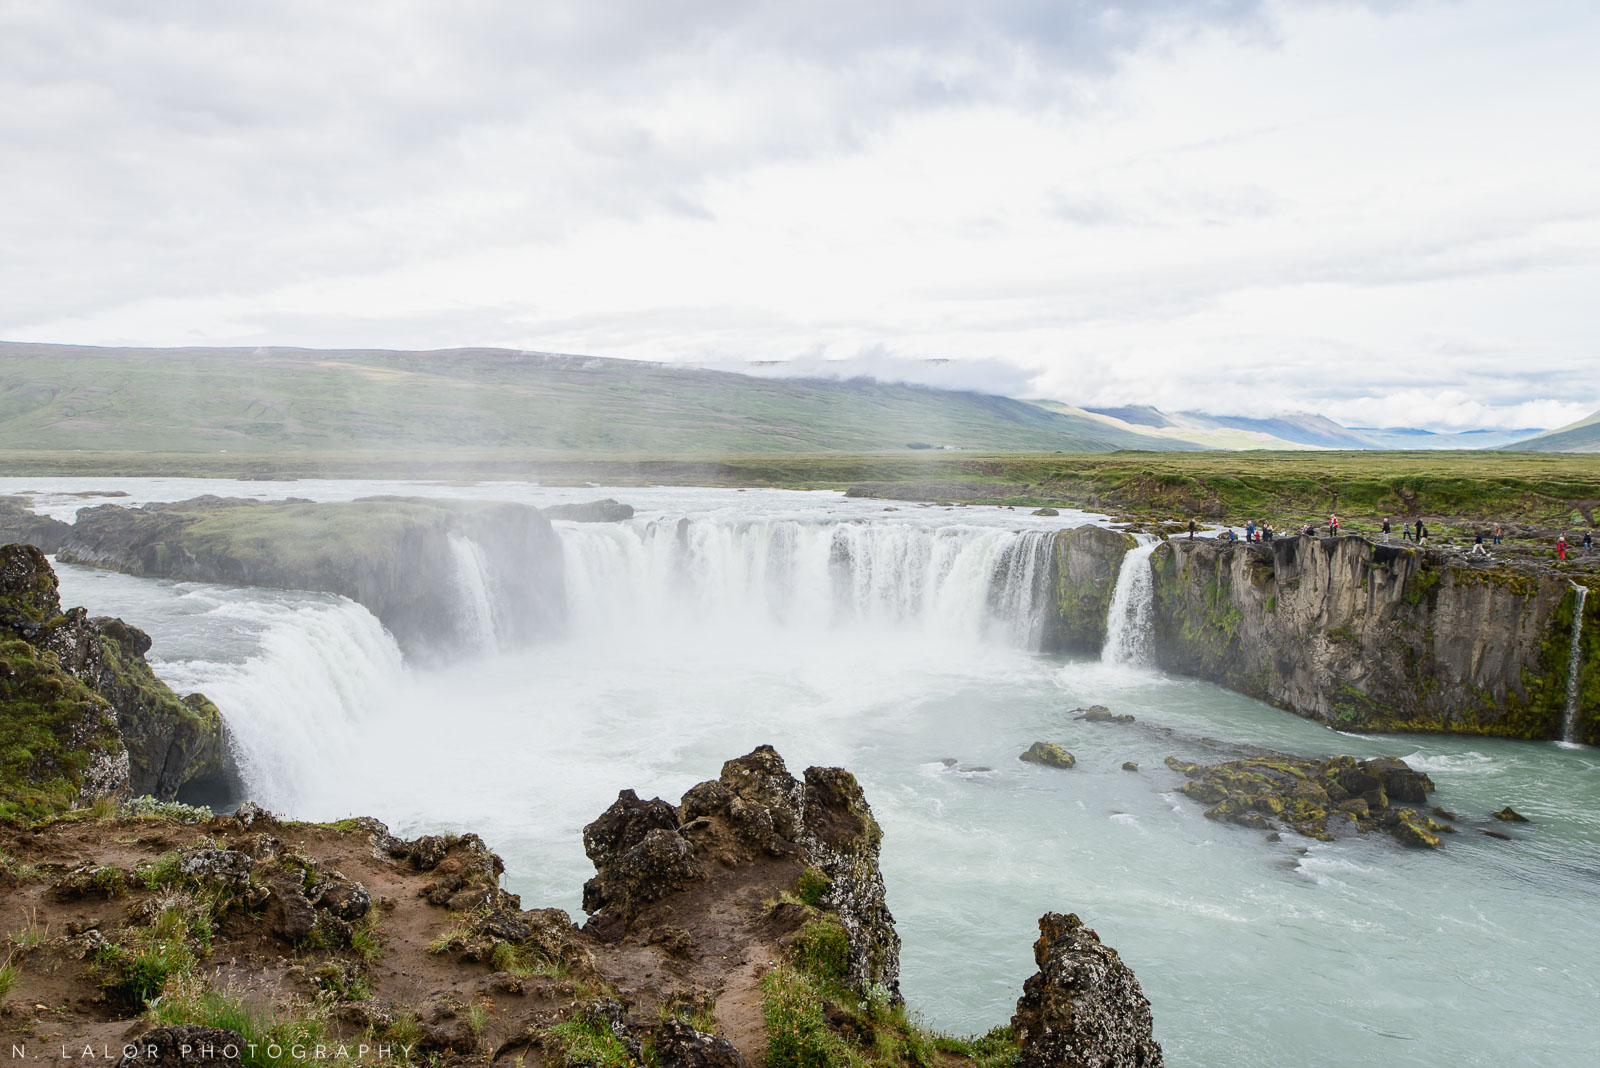 Goðafoss. From my trip to Iceland in 2018. Photograph by Nataliya Lalor.